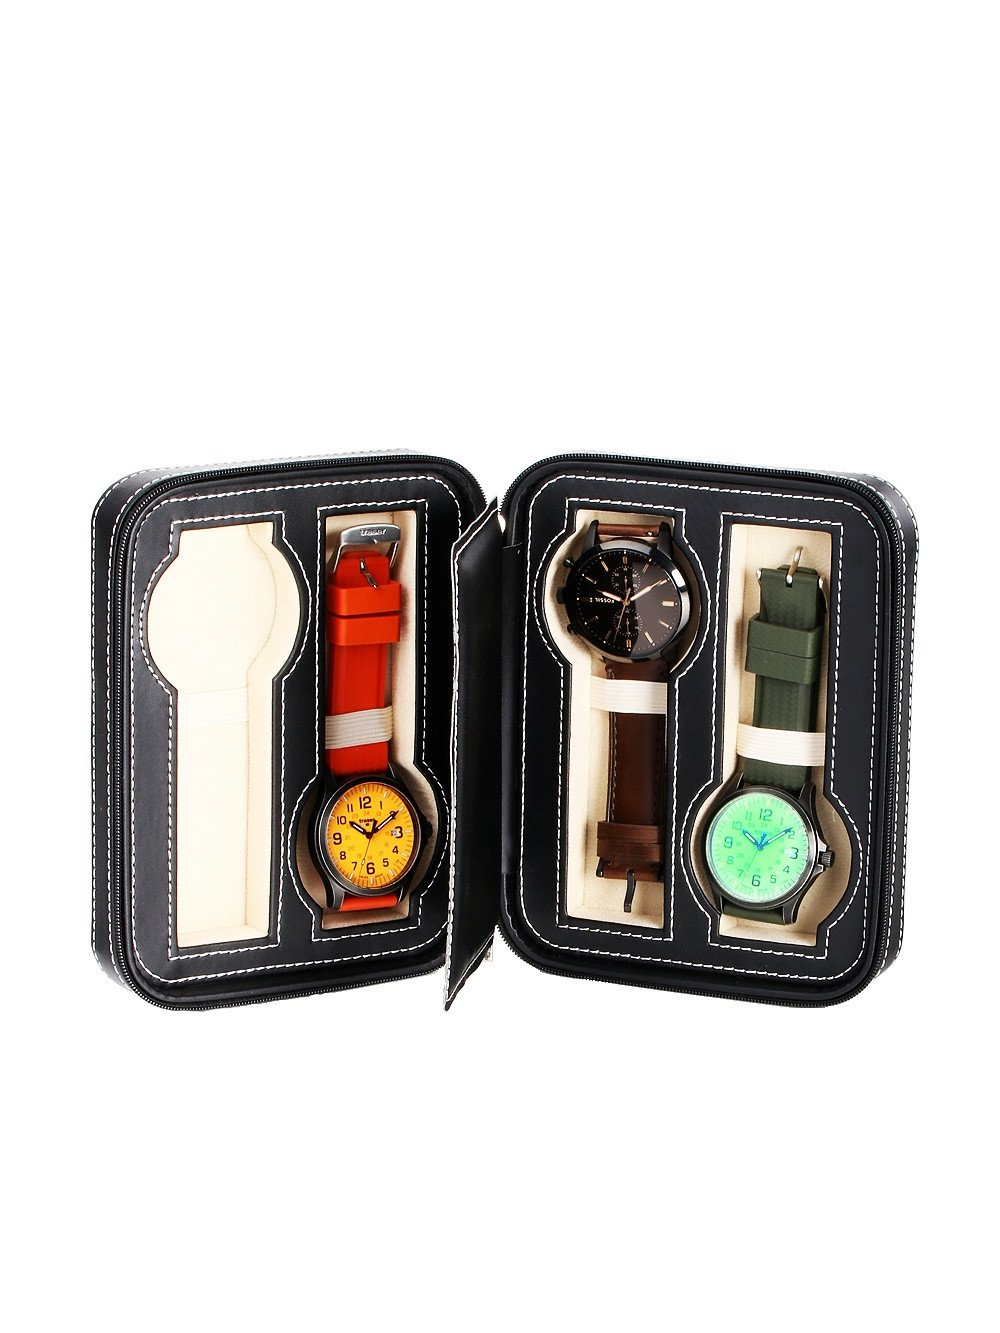 Rothenschild Watch Showcase RS-1150-4BL for 4 Watches Black